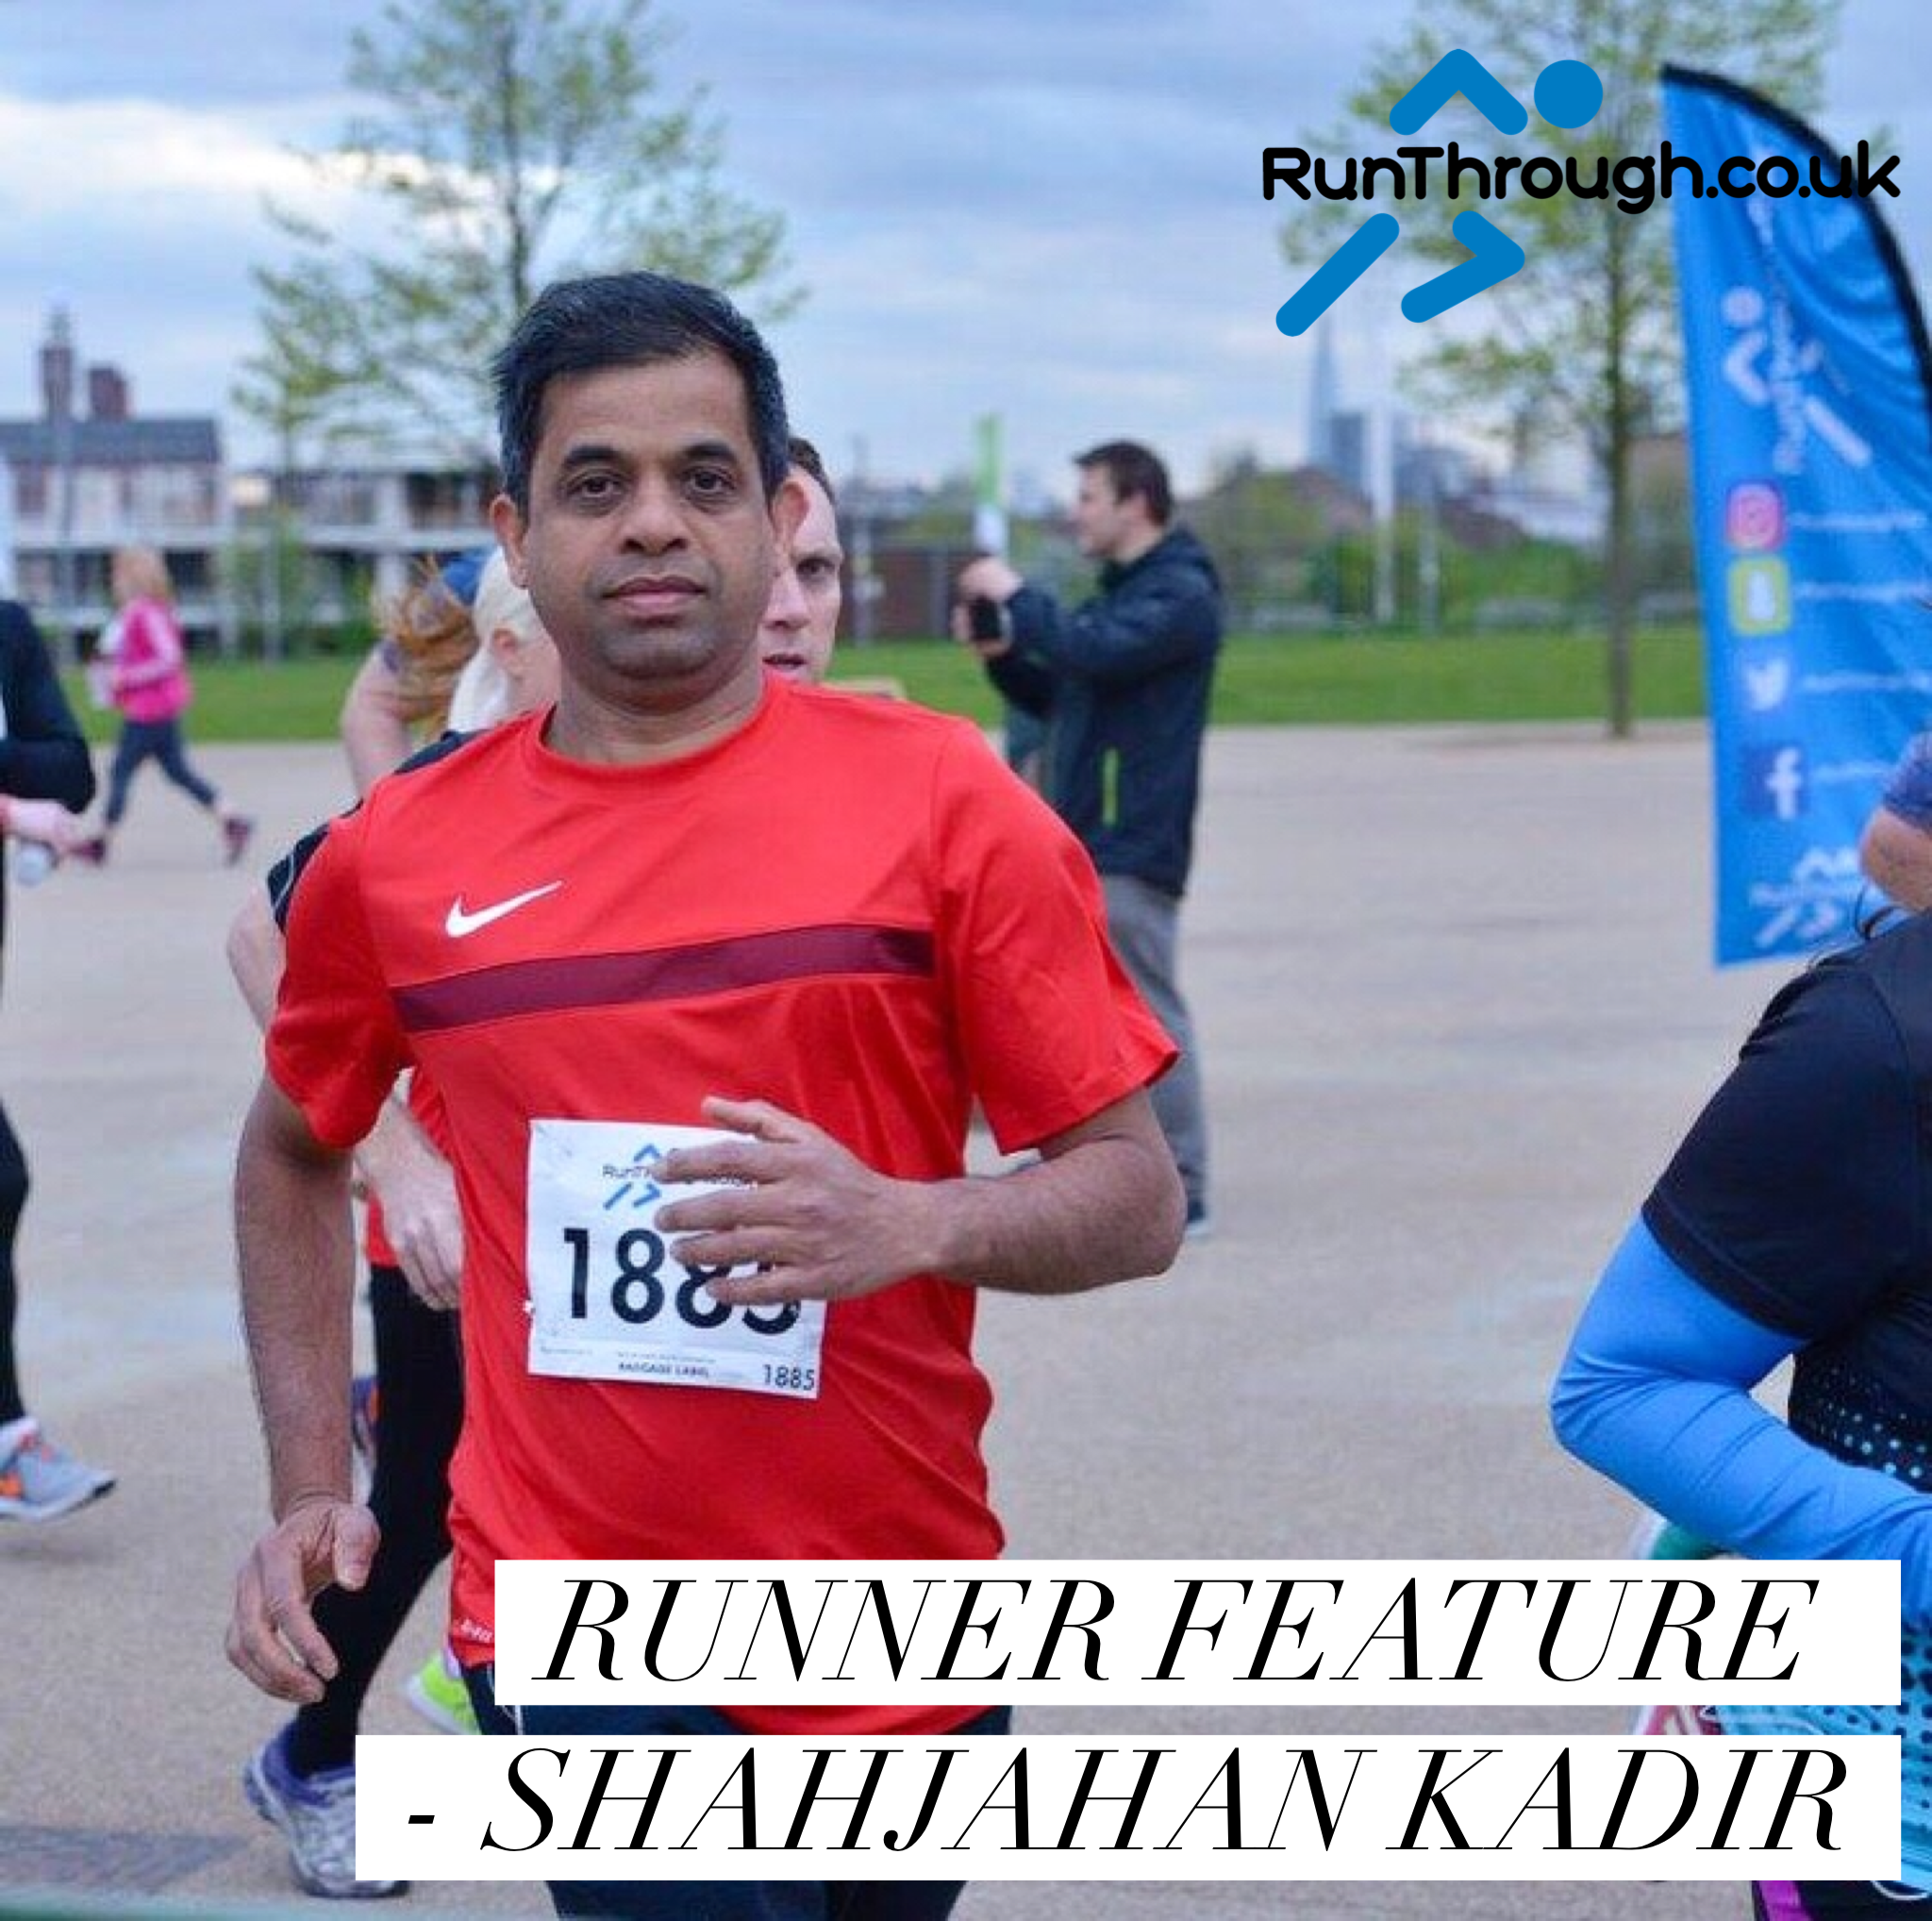 Runner Feature – Shahjahan Kadir